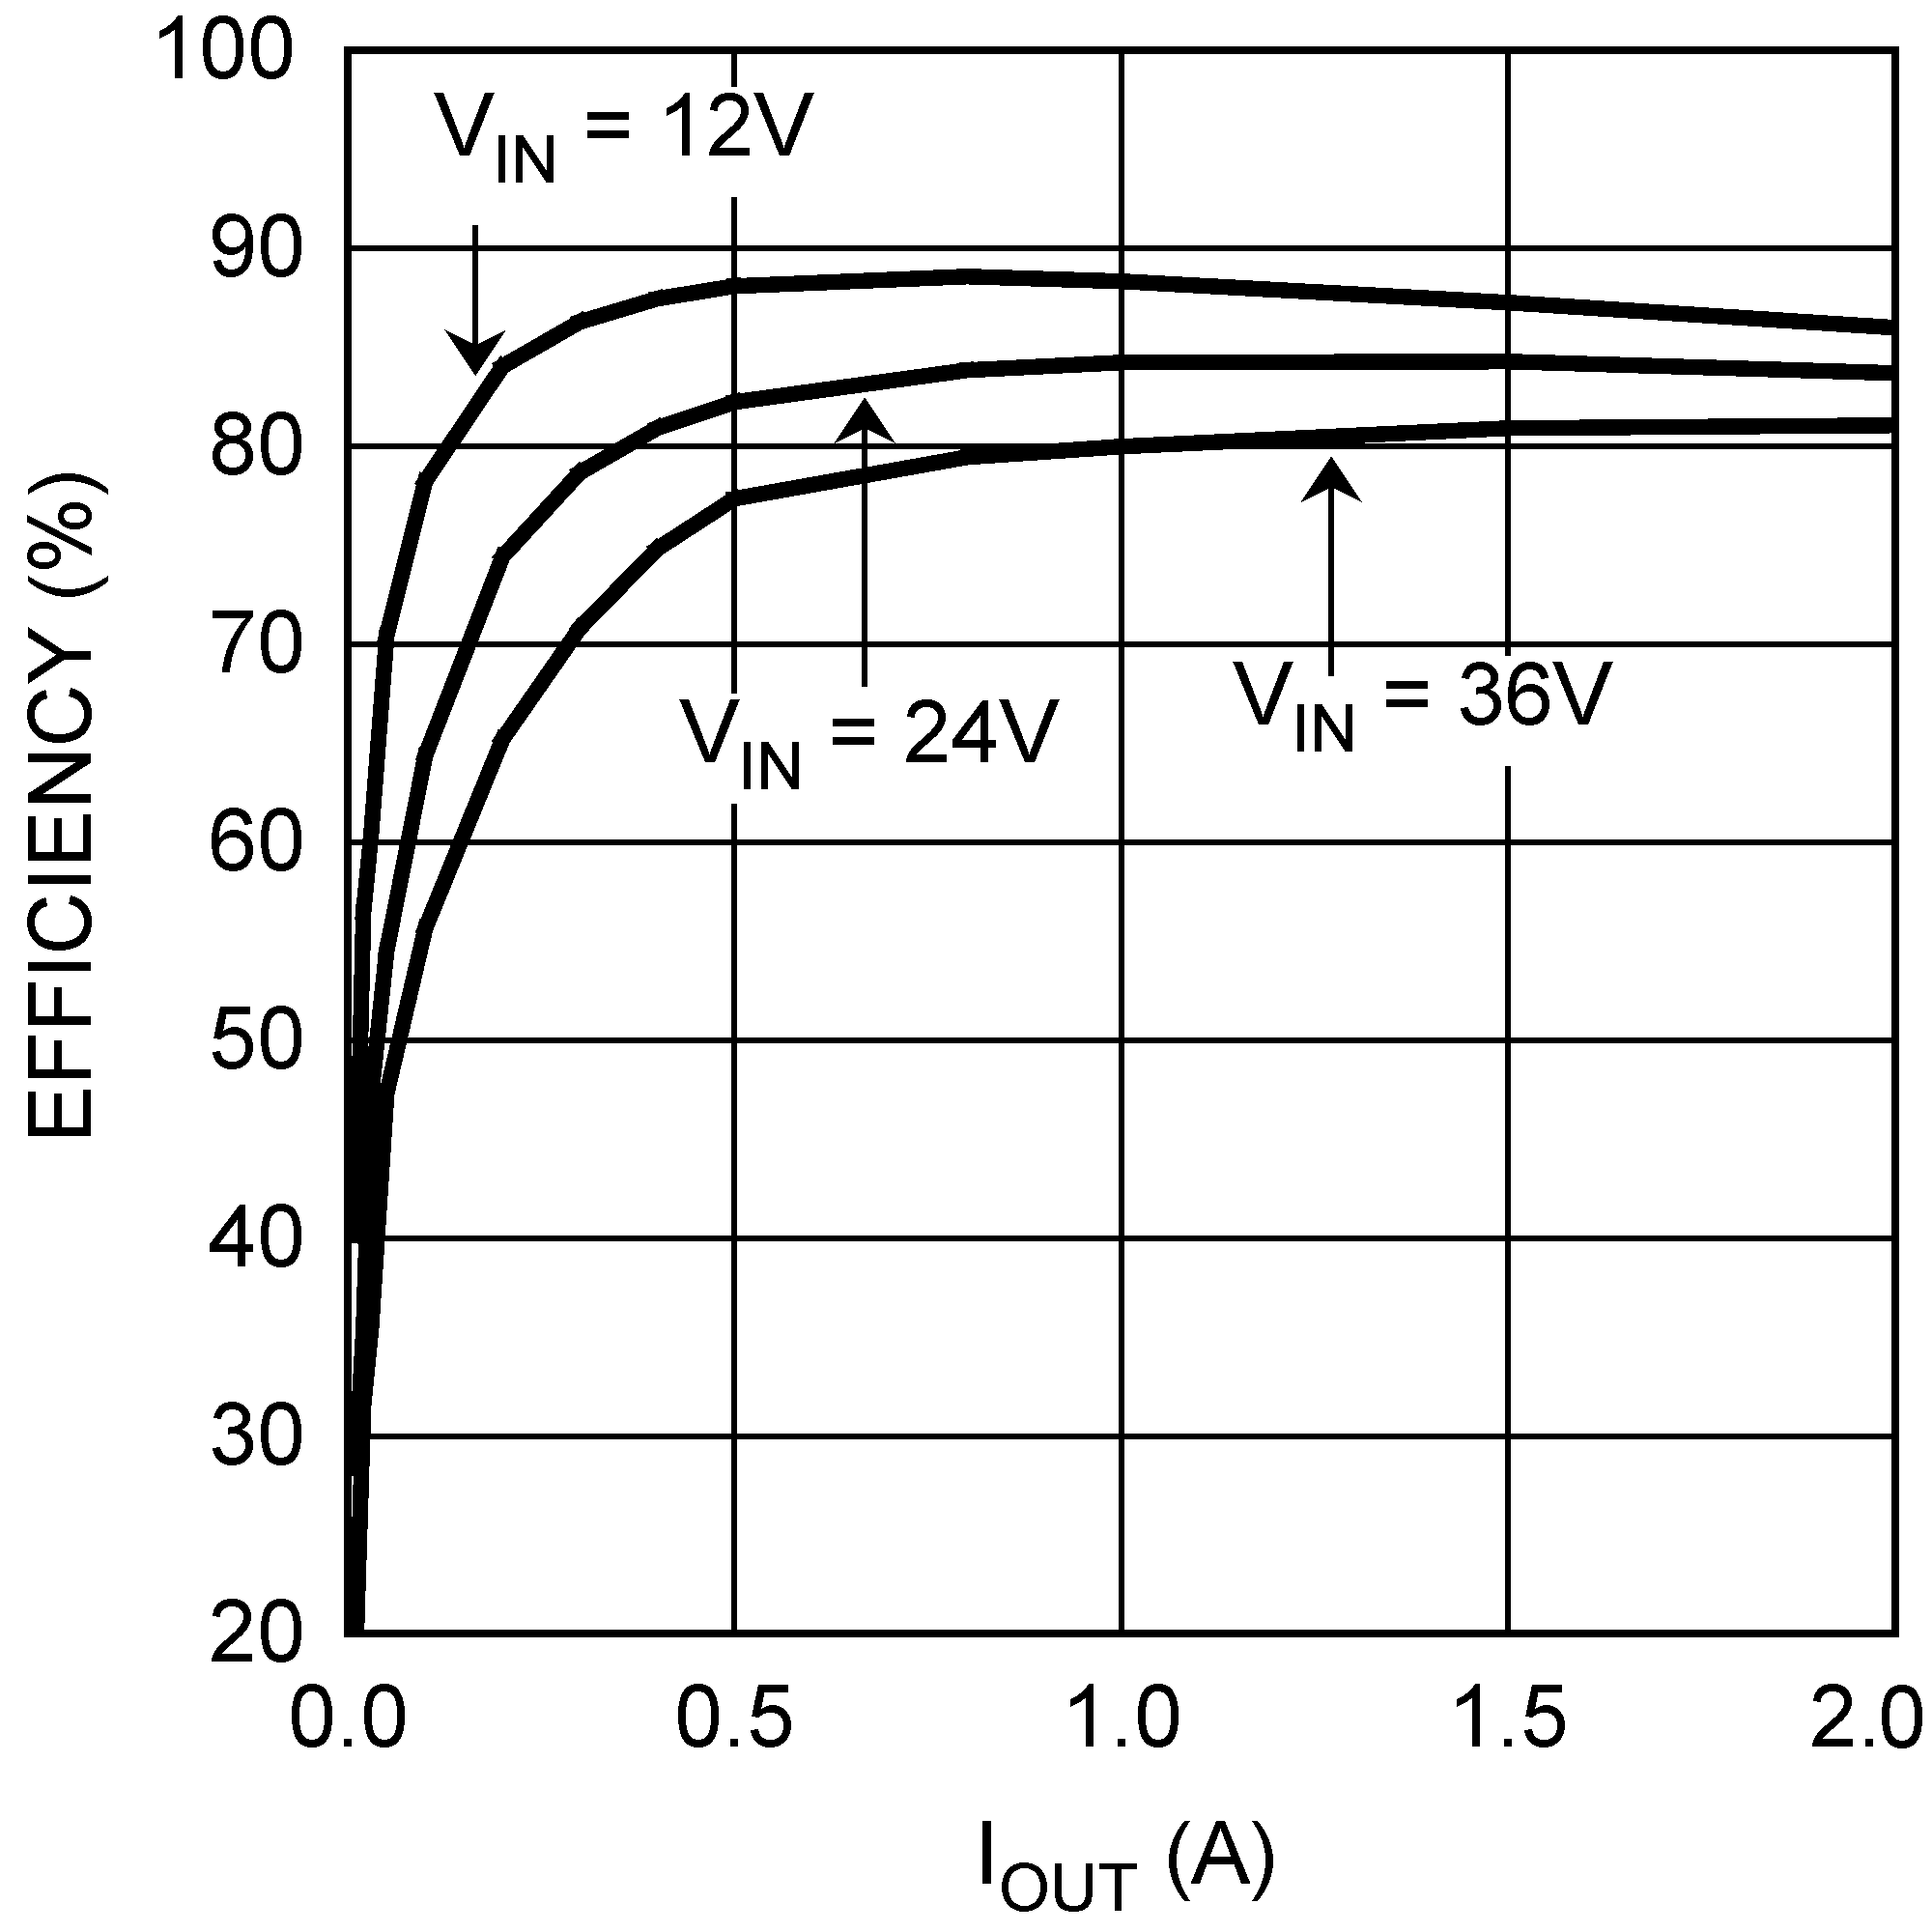 Lm22680 Potential Divider Circuit 8213 Application Curves